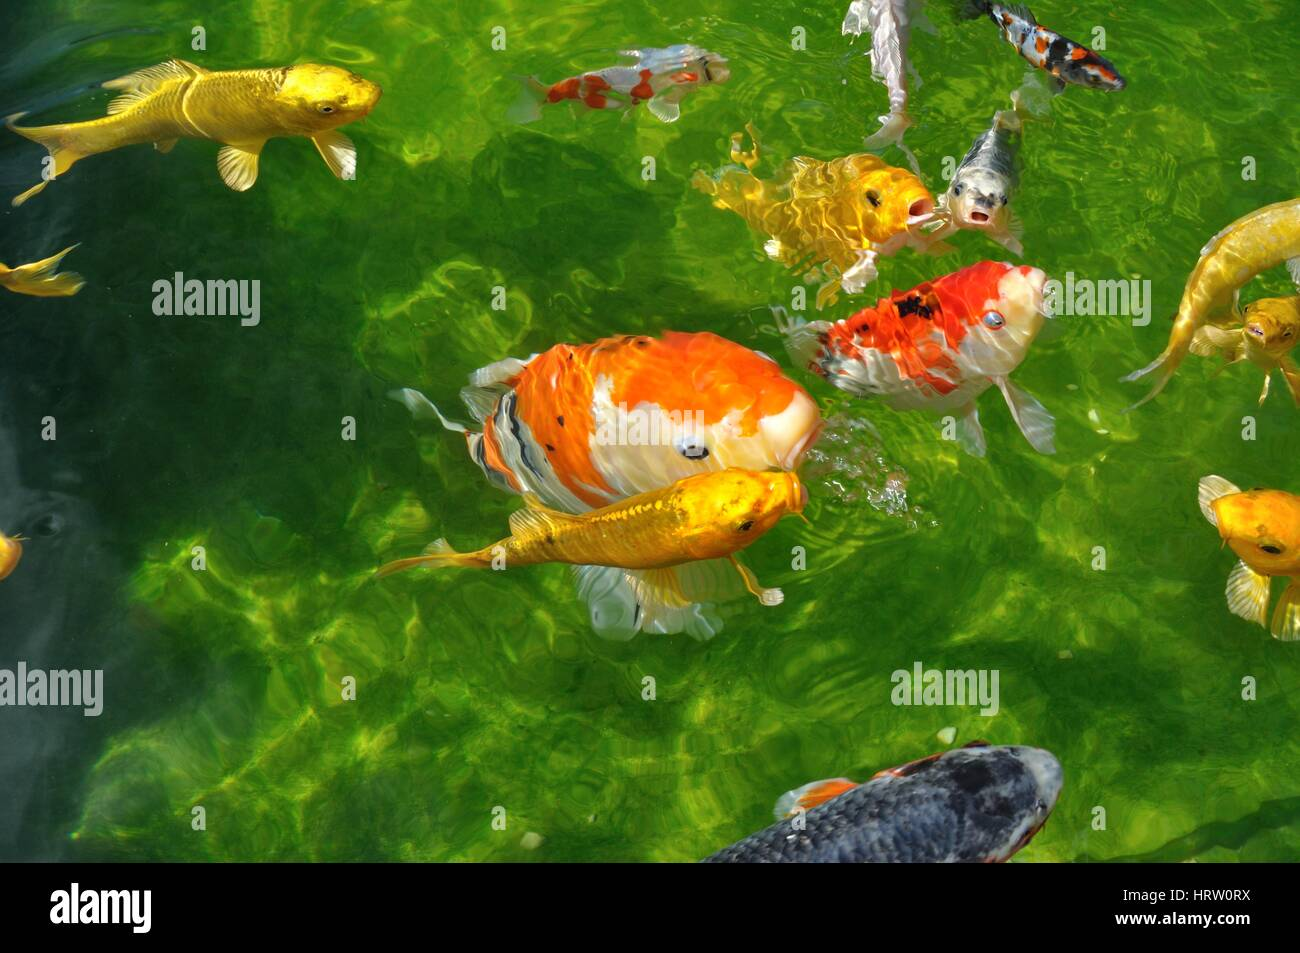 Koi Bassin Carpes Koi Dans Un Bassin Stock Photo 135159134 Alamy